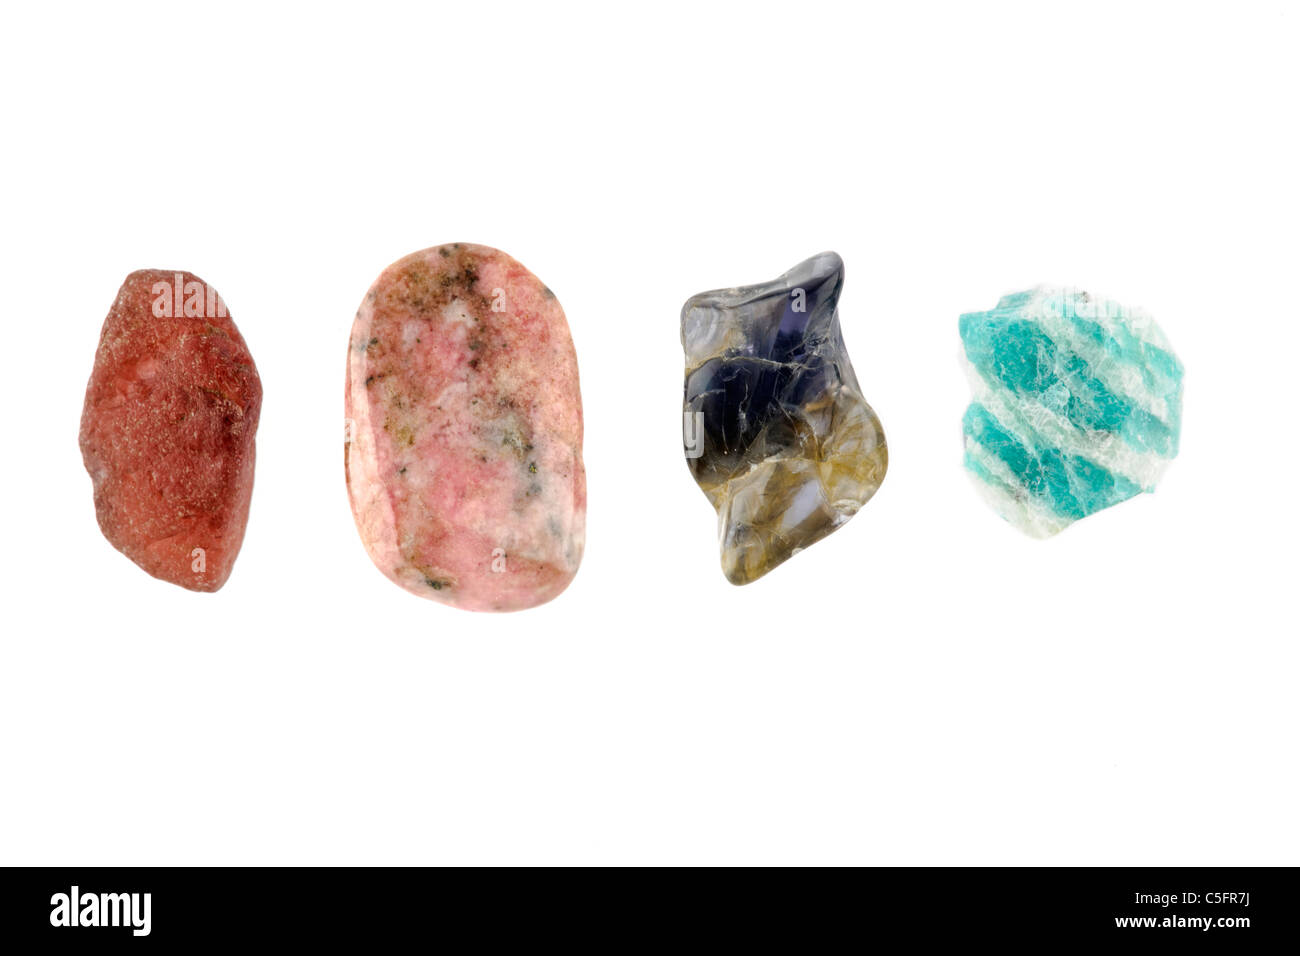 Four rock specimens all from Madagascar from left to right   Almandine, Rhodonite, Cordierite and Amazonite - Stock Image